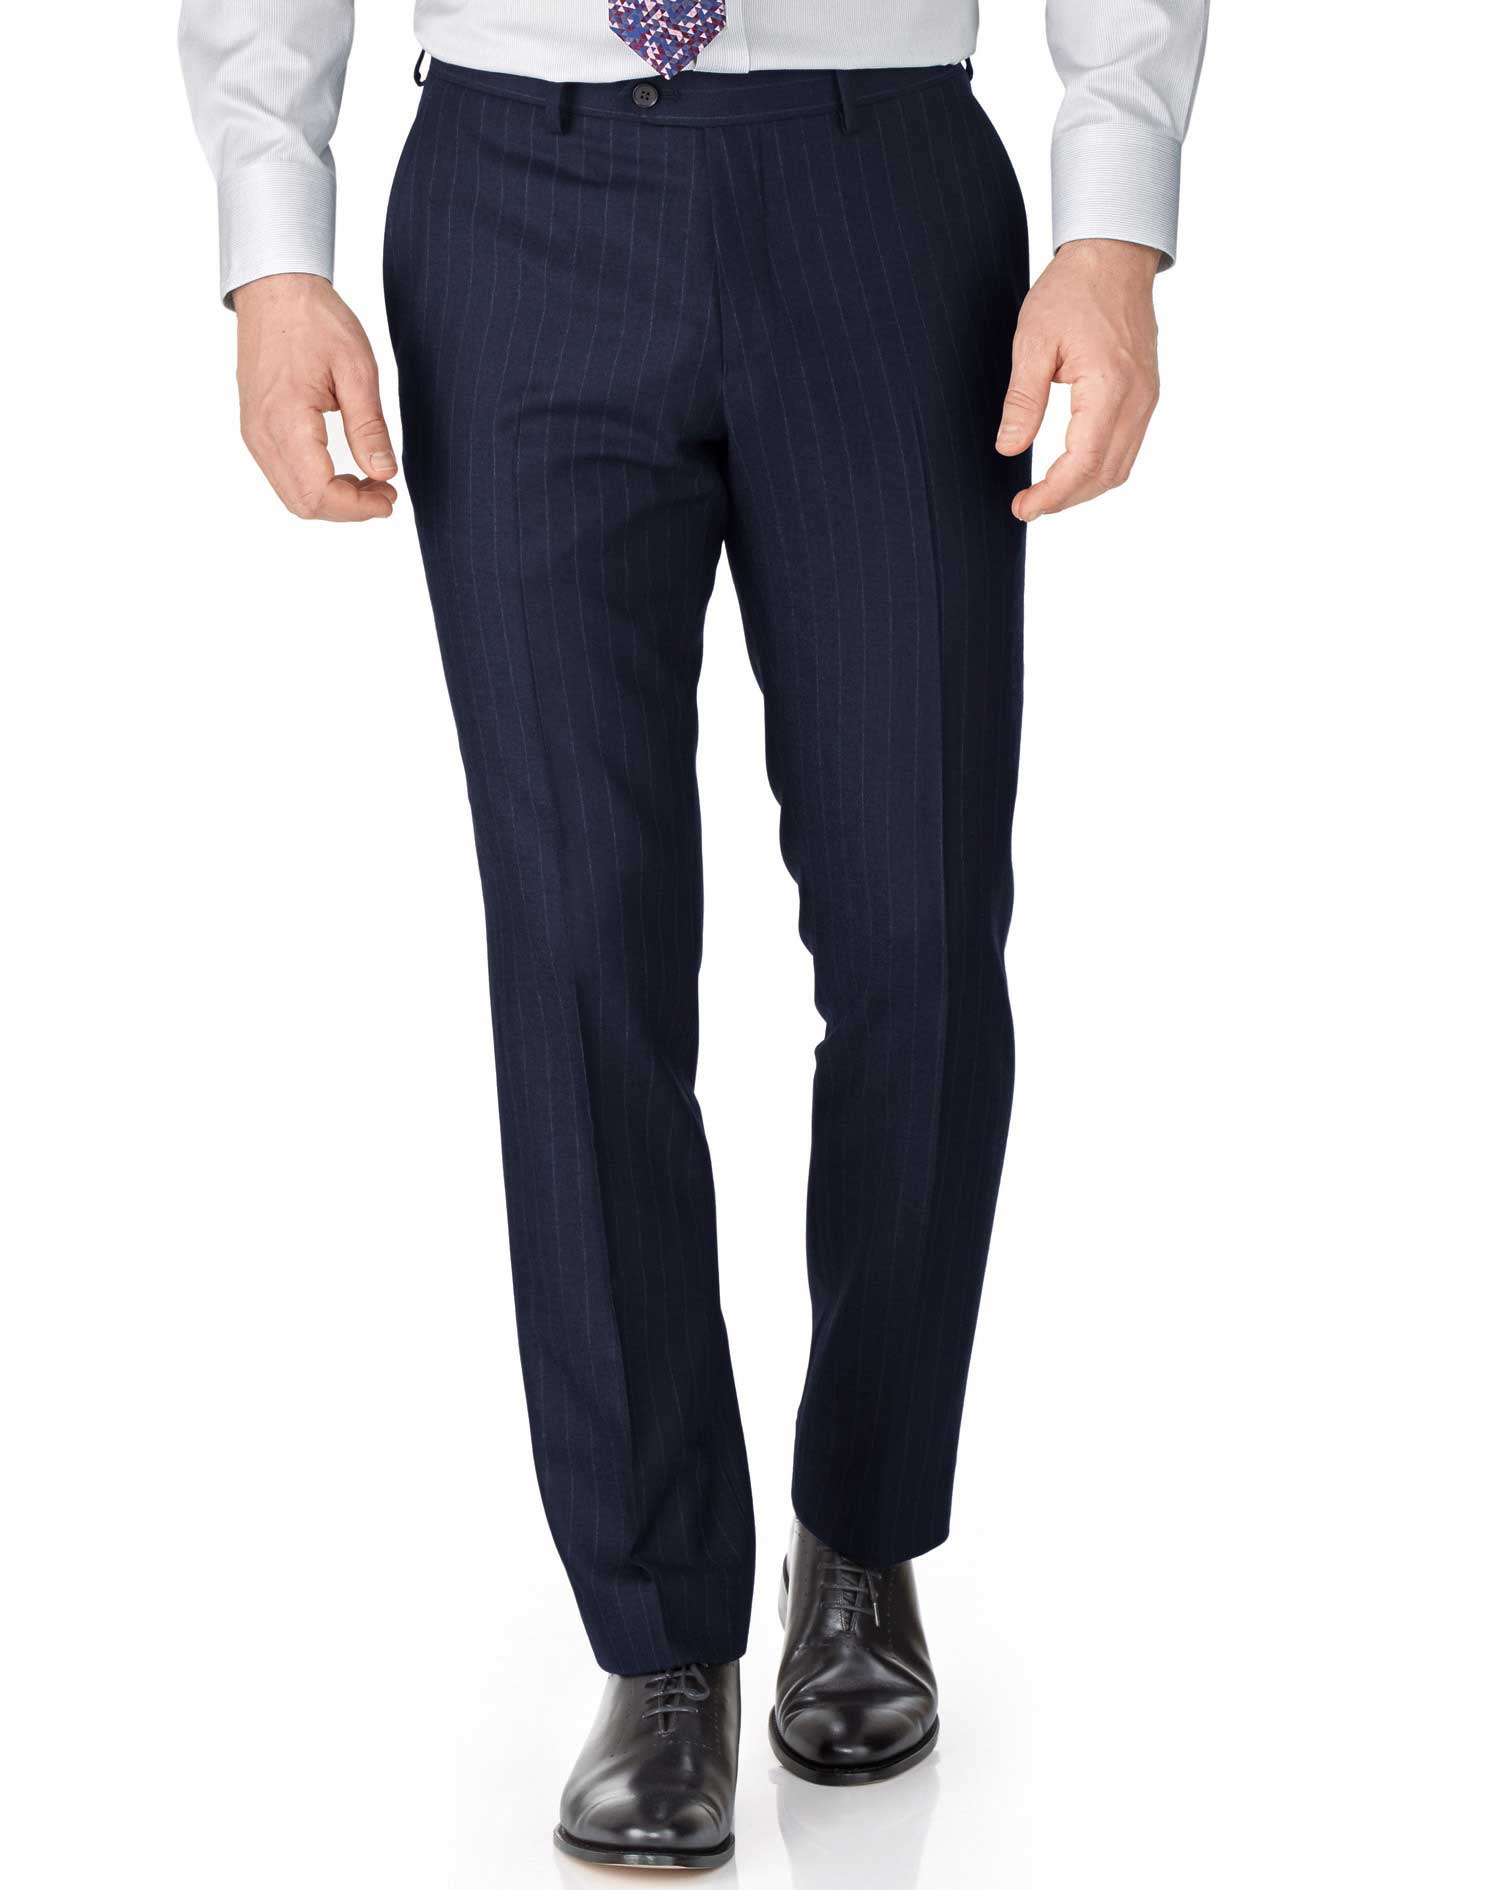 Navy Extra Slim Fit Twill Business Suit Trousers Size W36 L30 by Charles Tyrwhitt